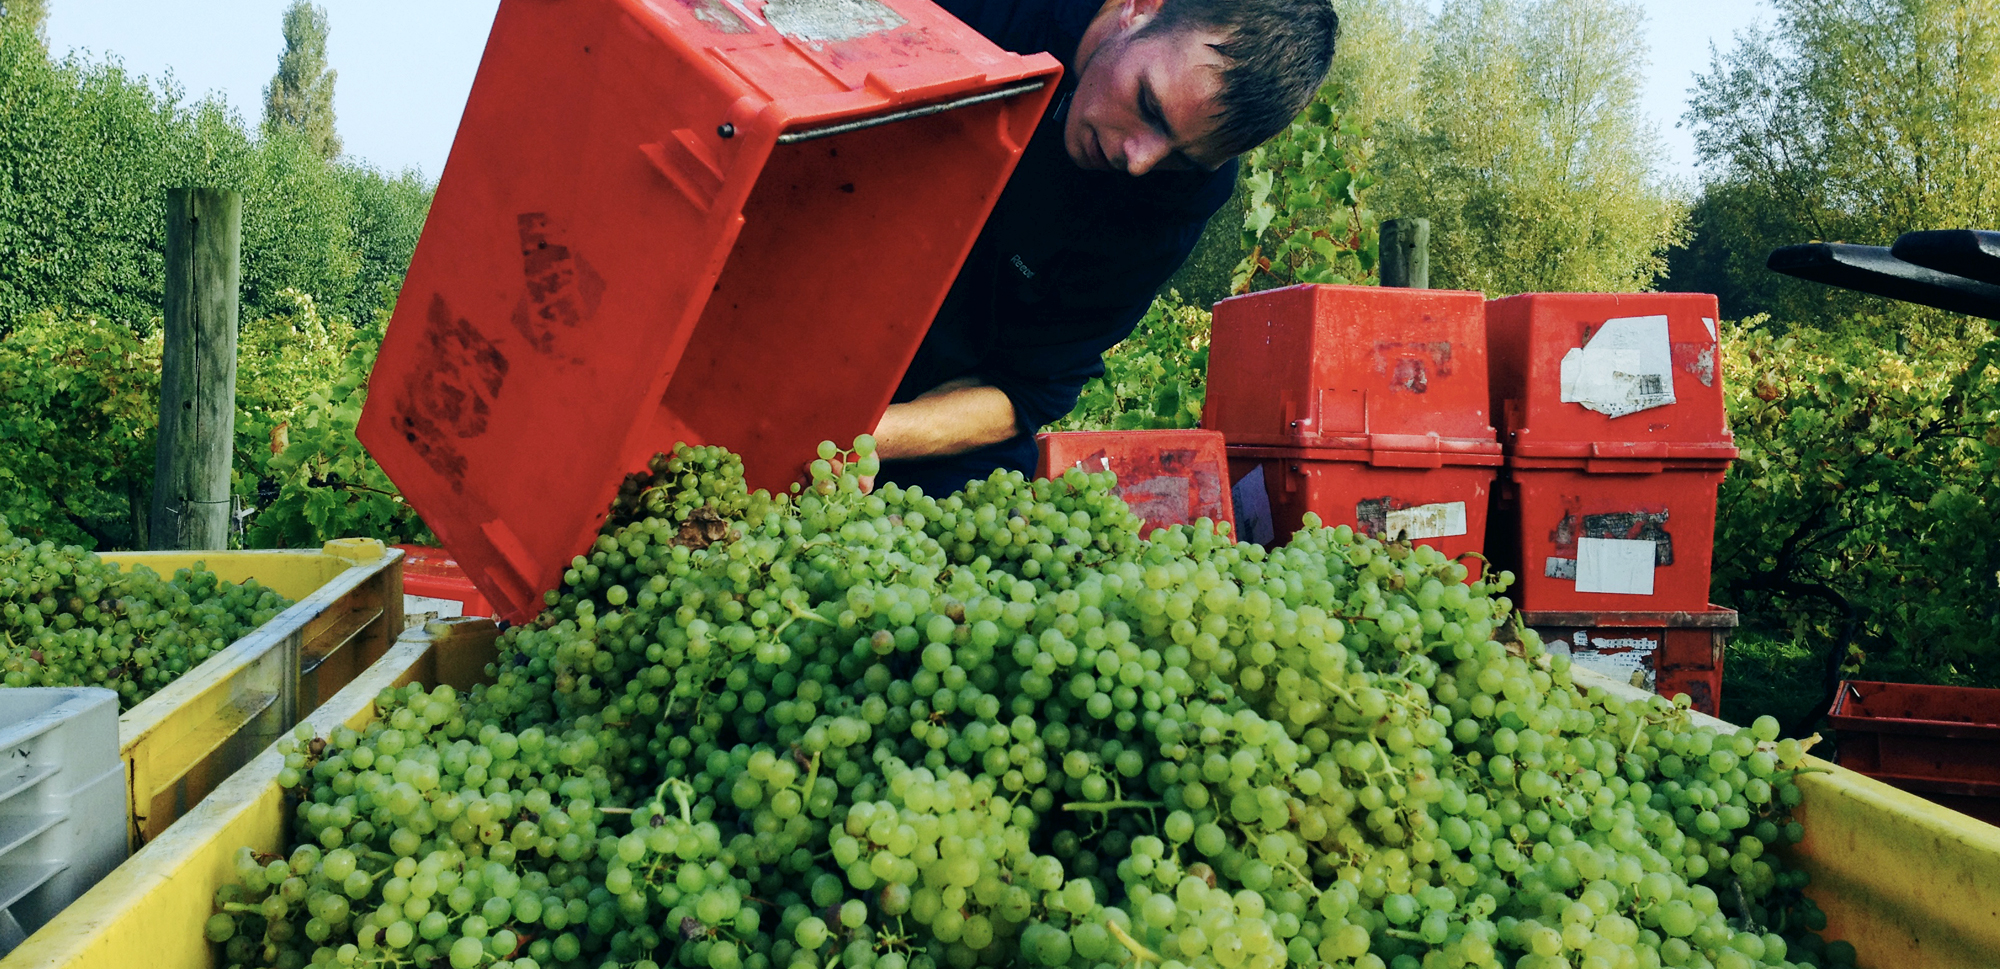 Grapes for sparkling wine production